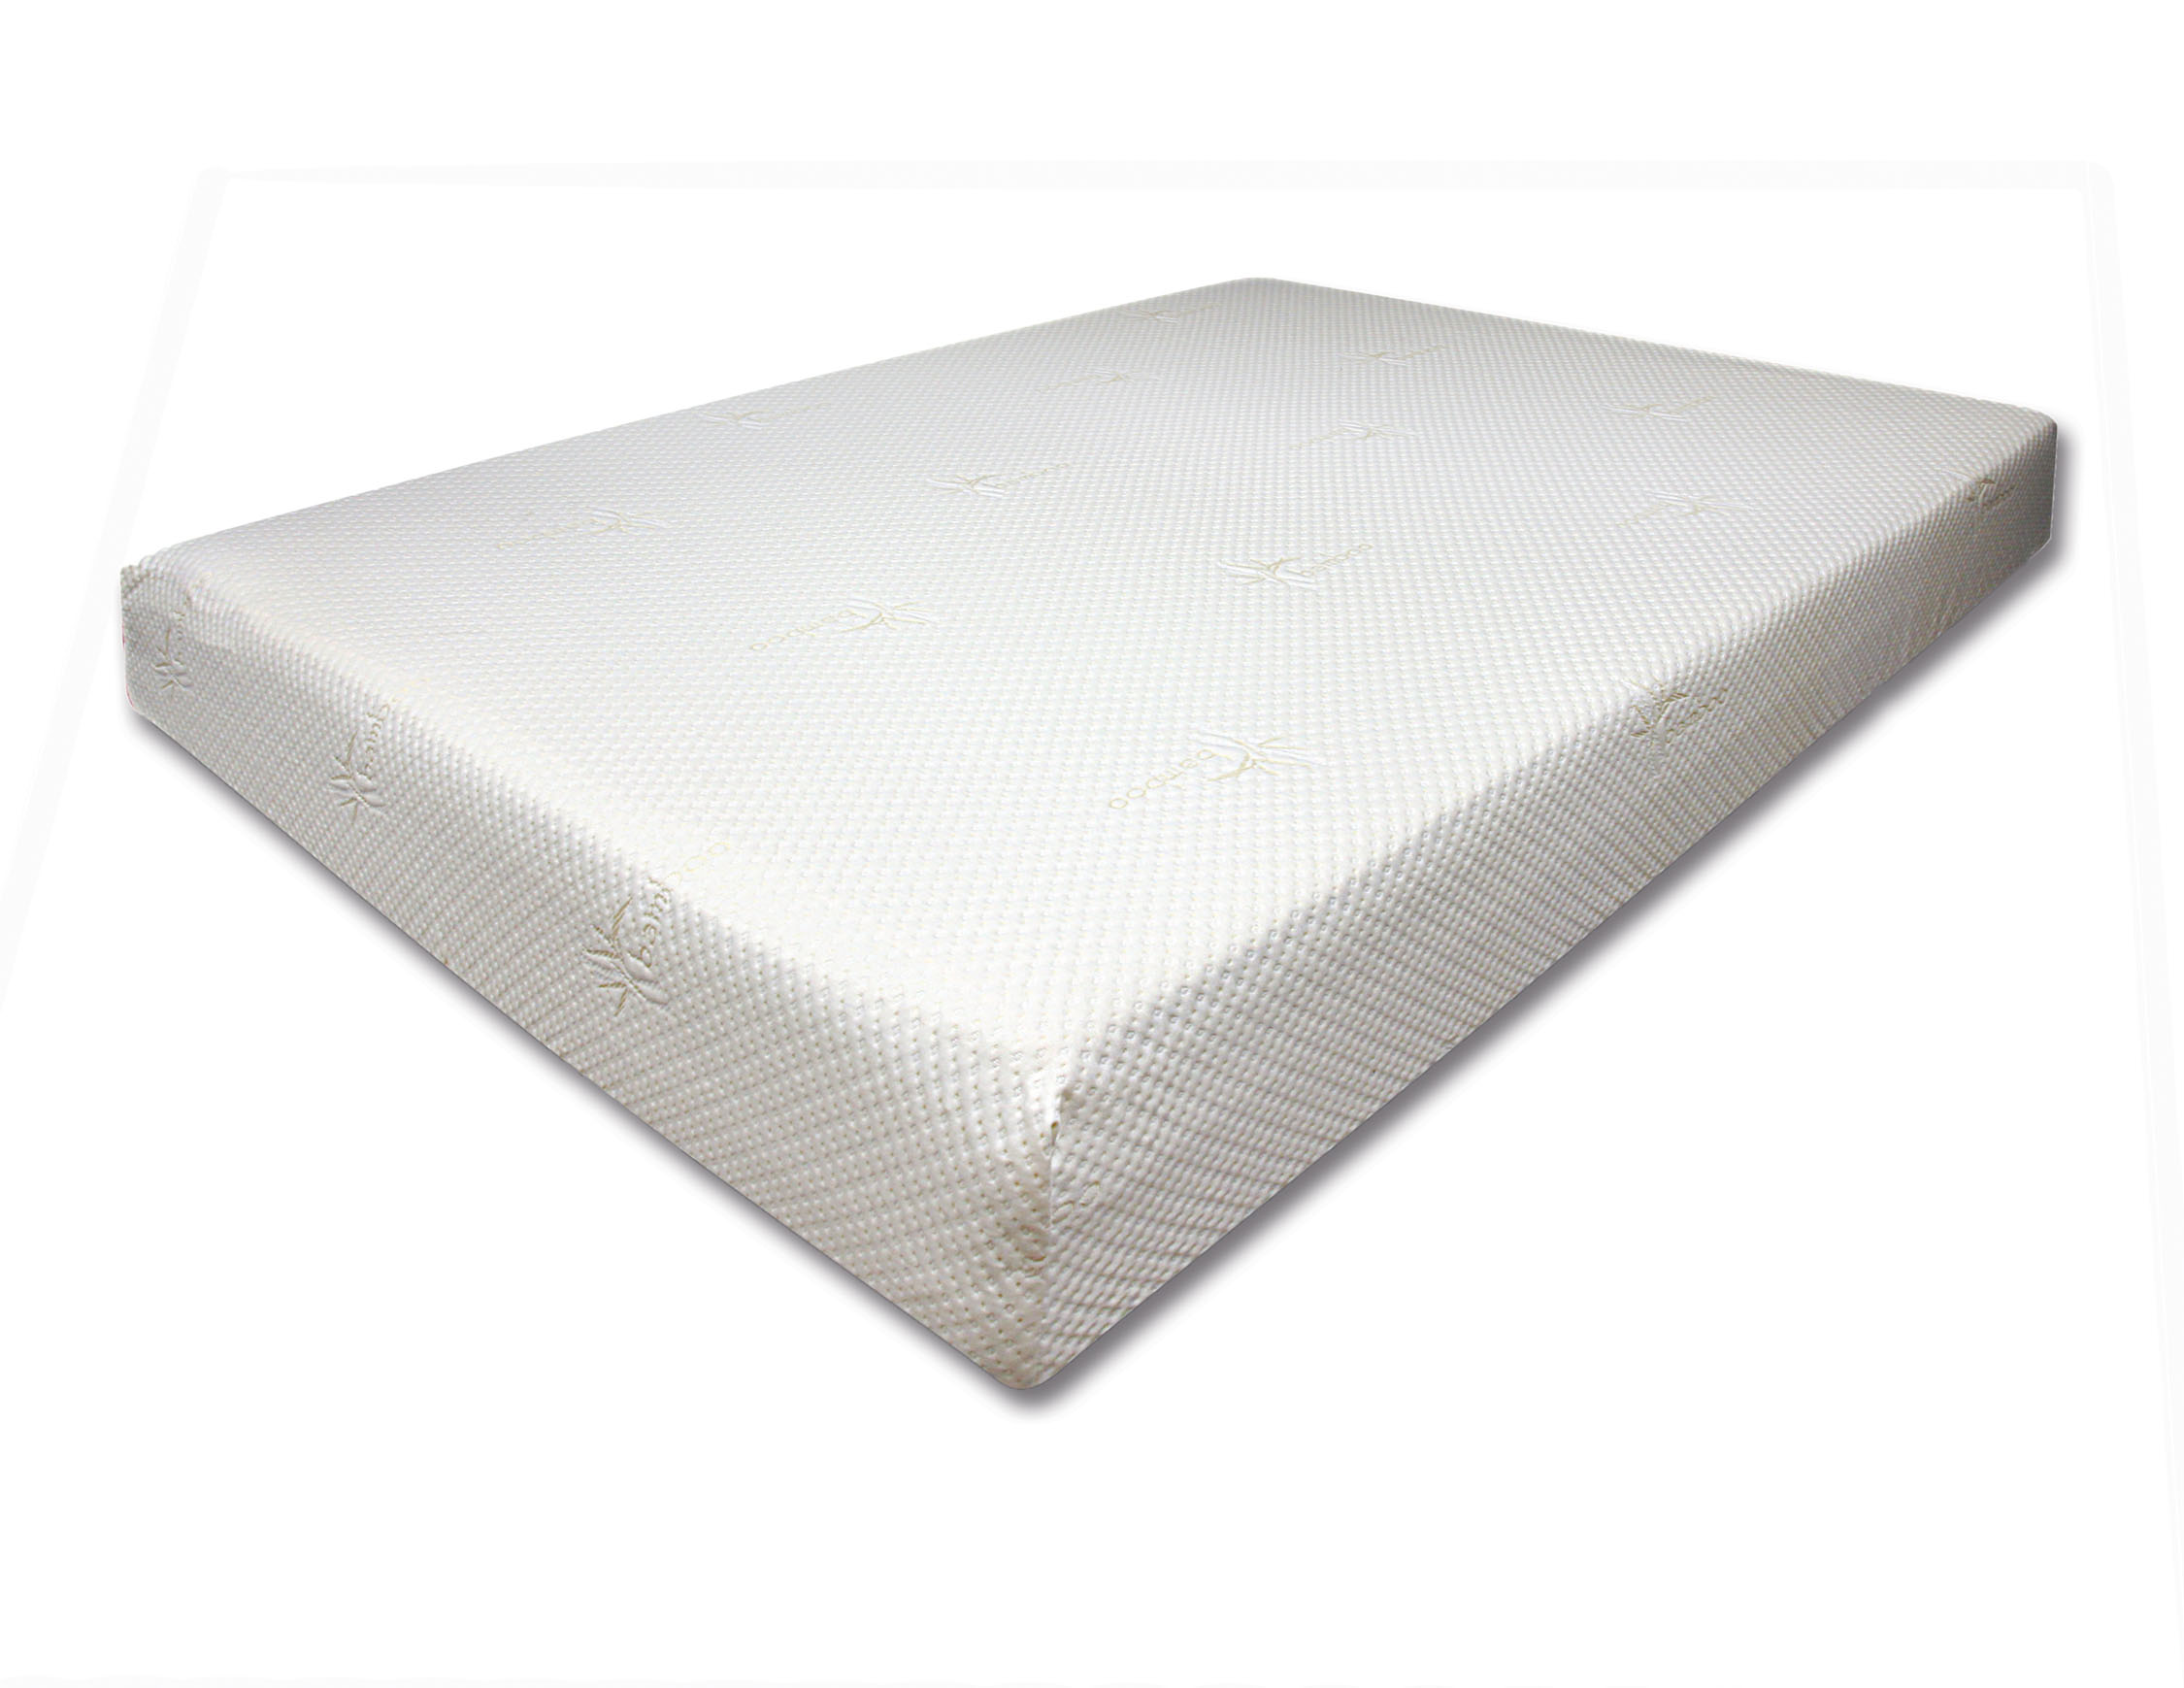 Baby Mattress Kmart Queen Mattress Base Kmart